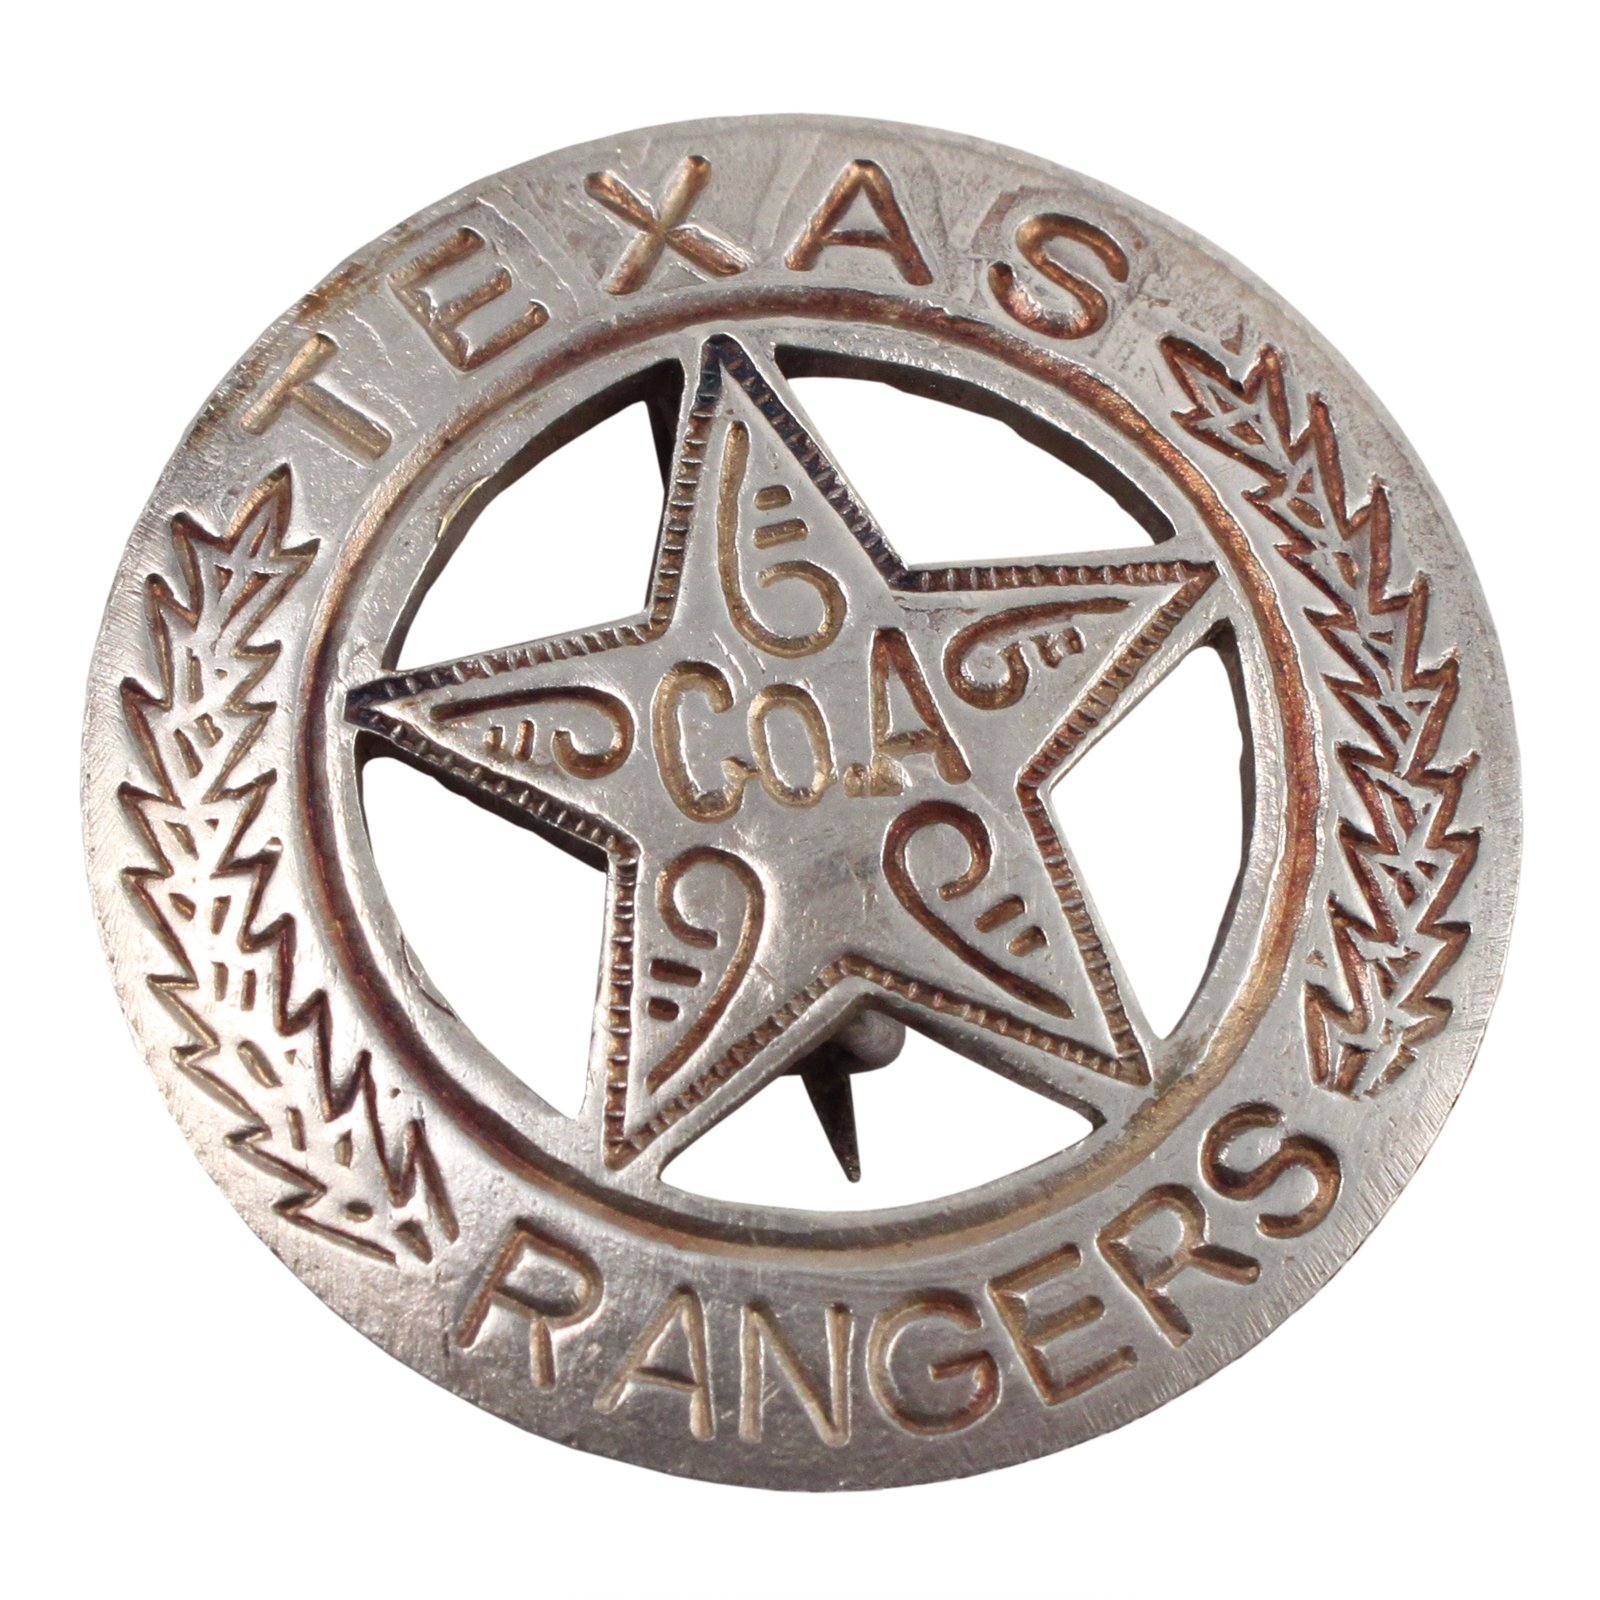 Texas Rangers Company A Star Old West Badge Front